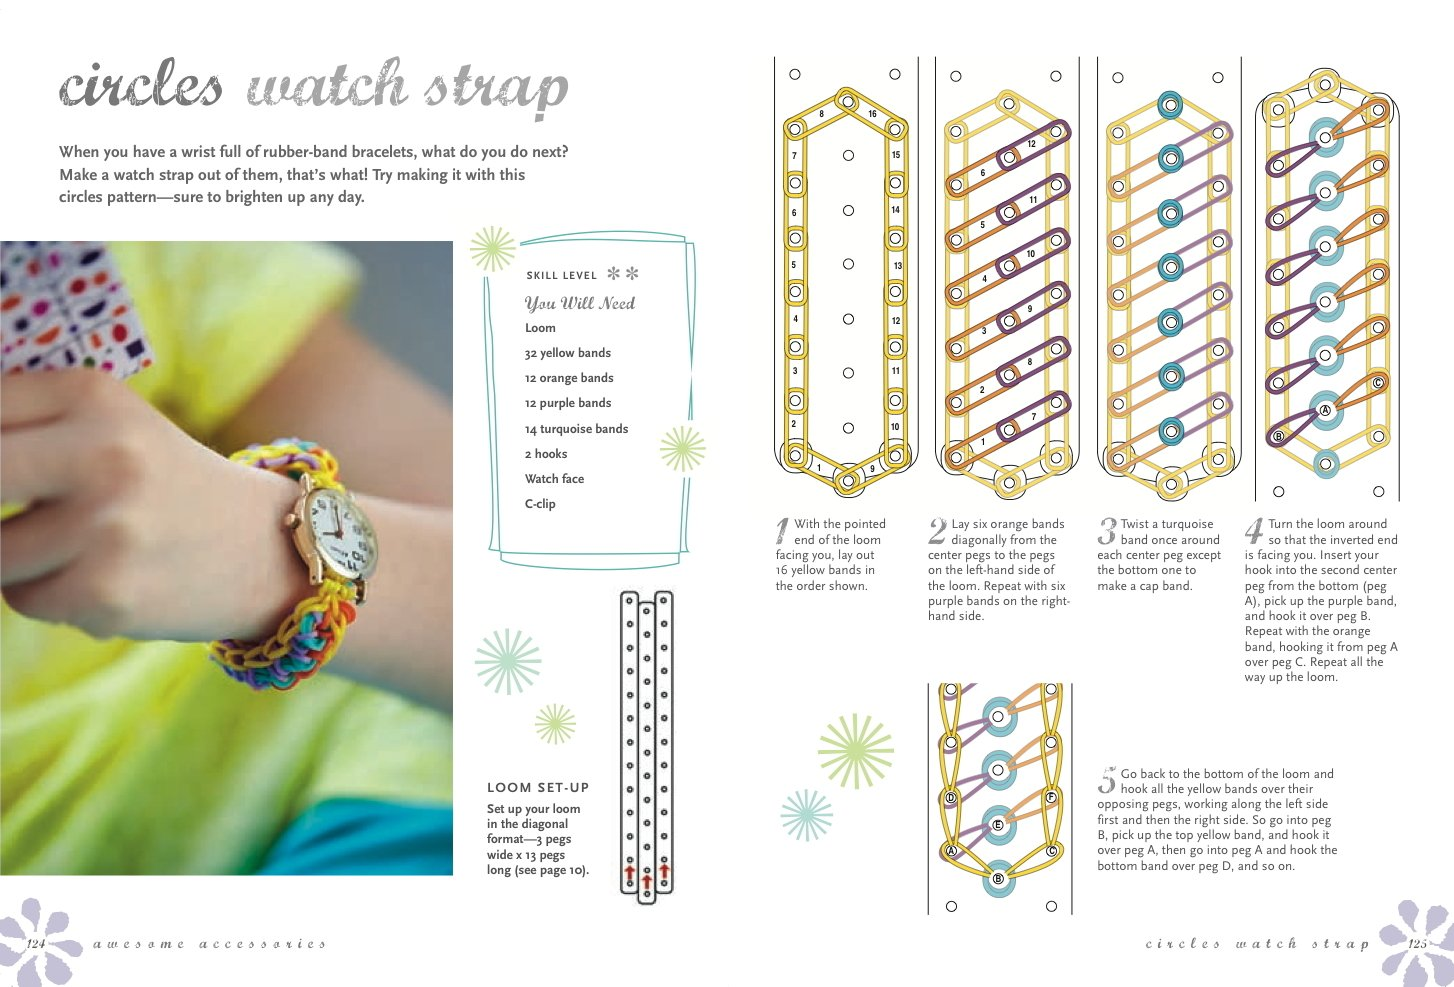 Rubber band bracelets 35 colorful projects youll love to make rubber band bracelets 35 colorful projects youll love to make lucy hopping 9781782491590 amazon books fandeluxe Images